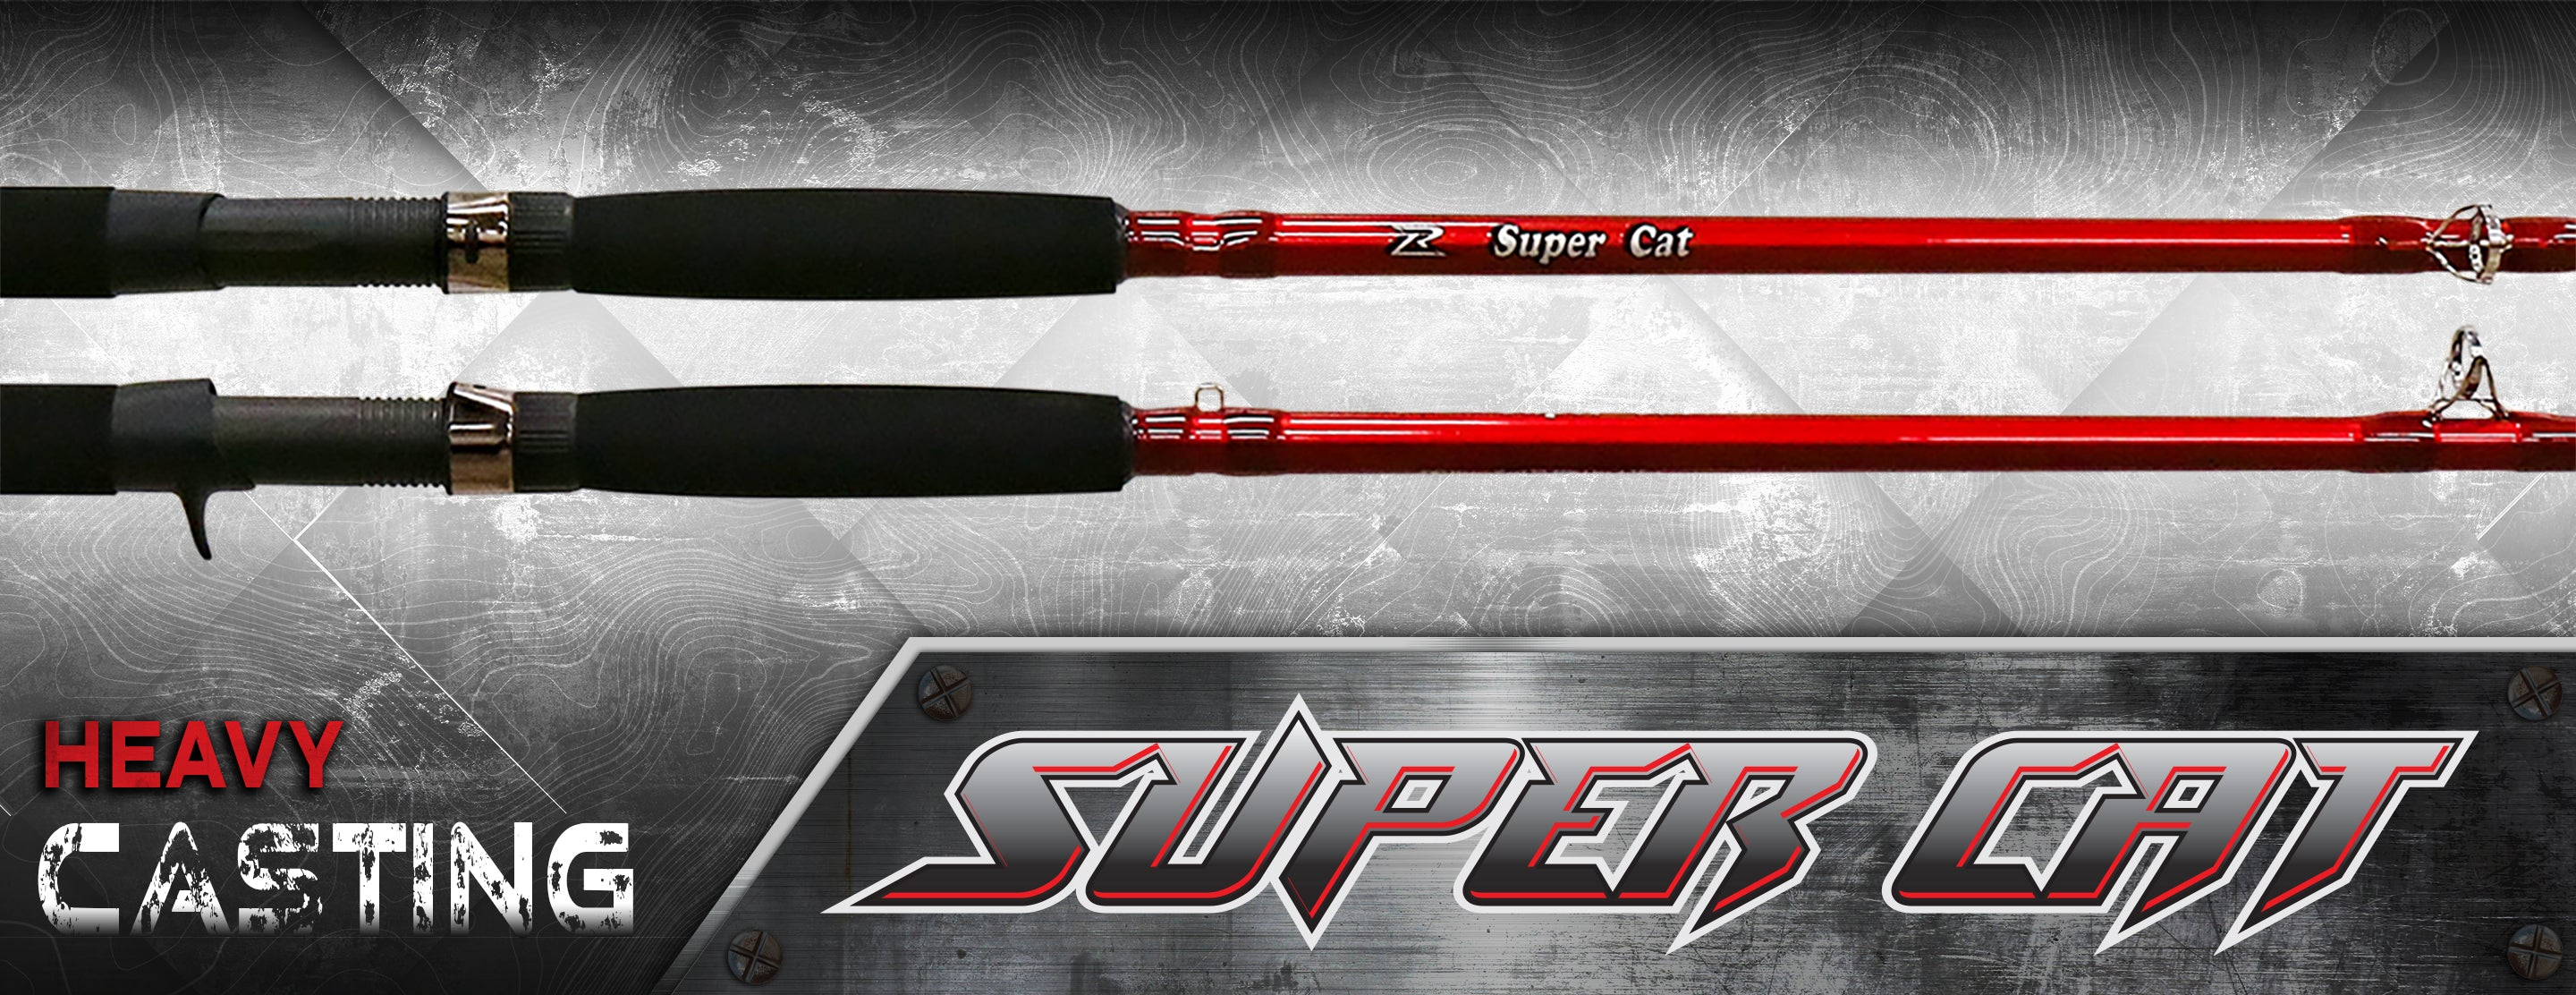 Super Cat Heavy Casting 7'6""